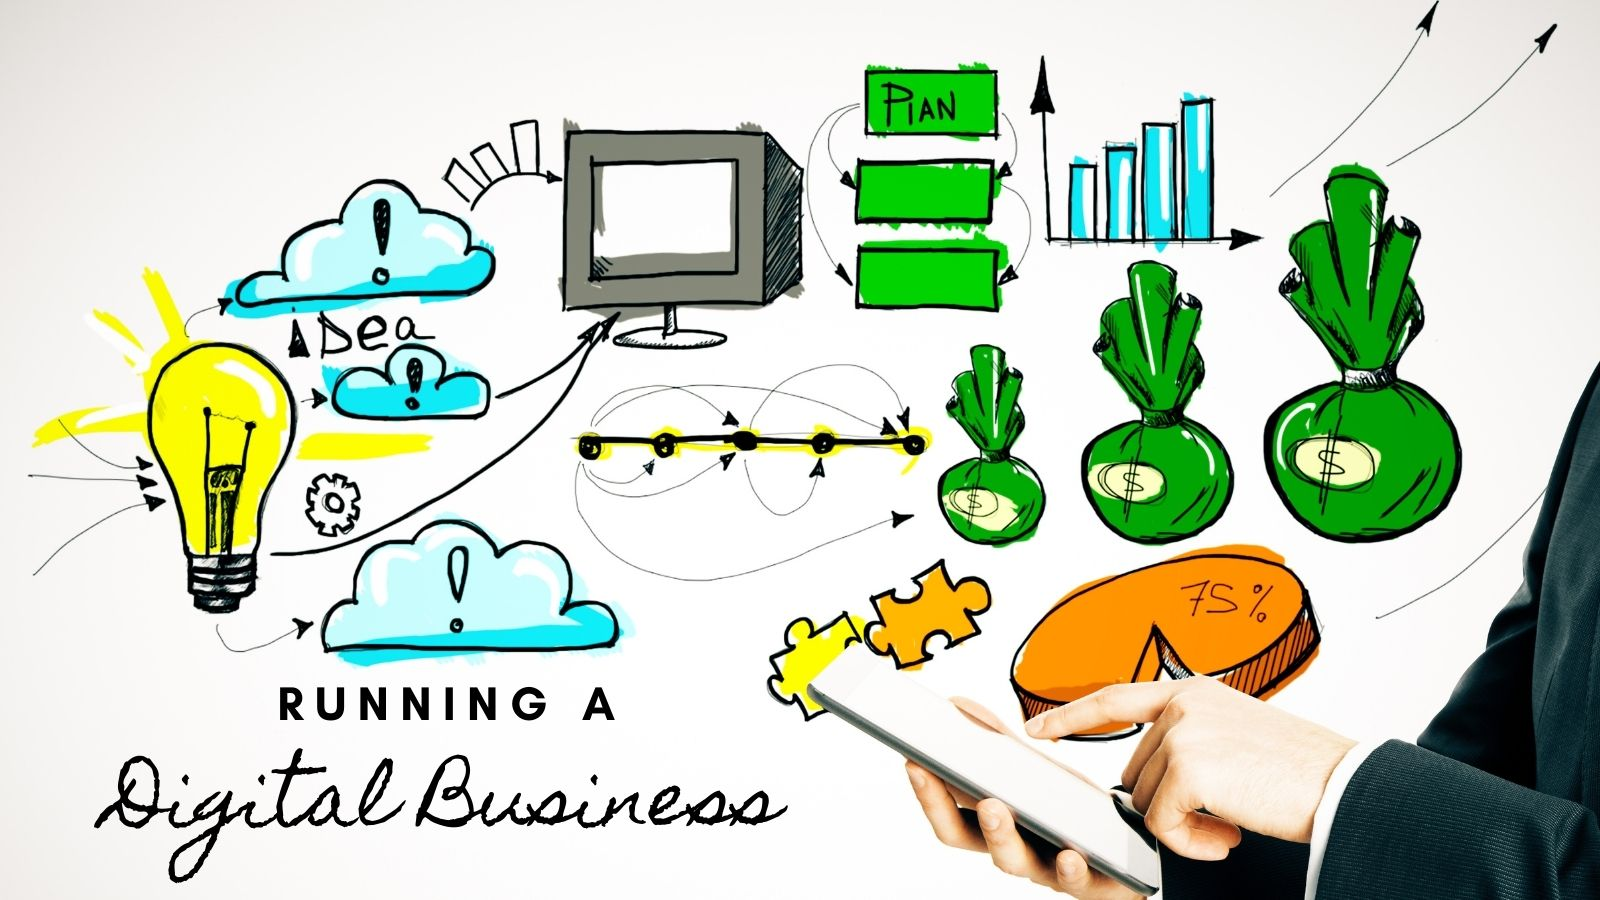 running a digital business is not easy